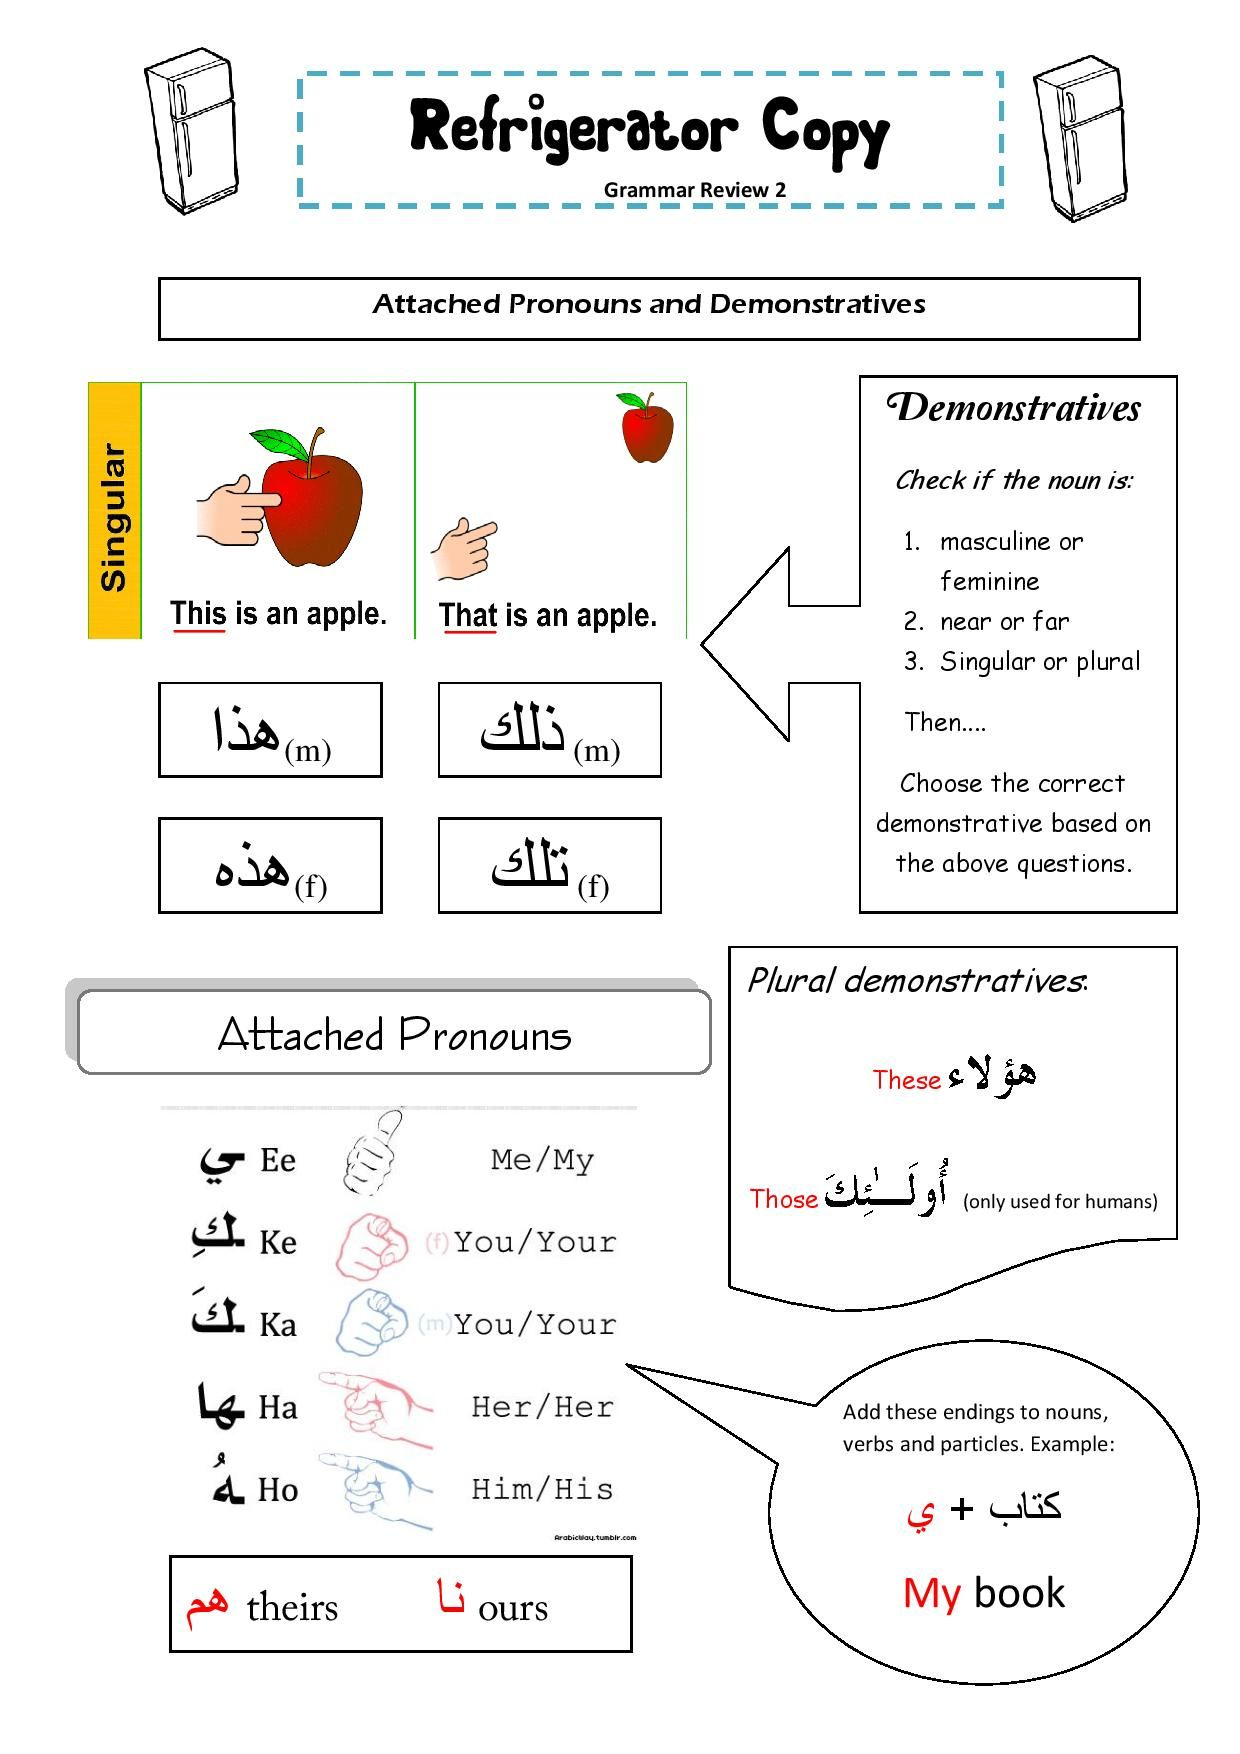 fridge copy grammar review sheet arabic attached pronouns demonstratives please head over. Black Bedroom Furniture Sets. Home Design Ideas